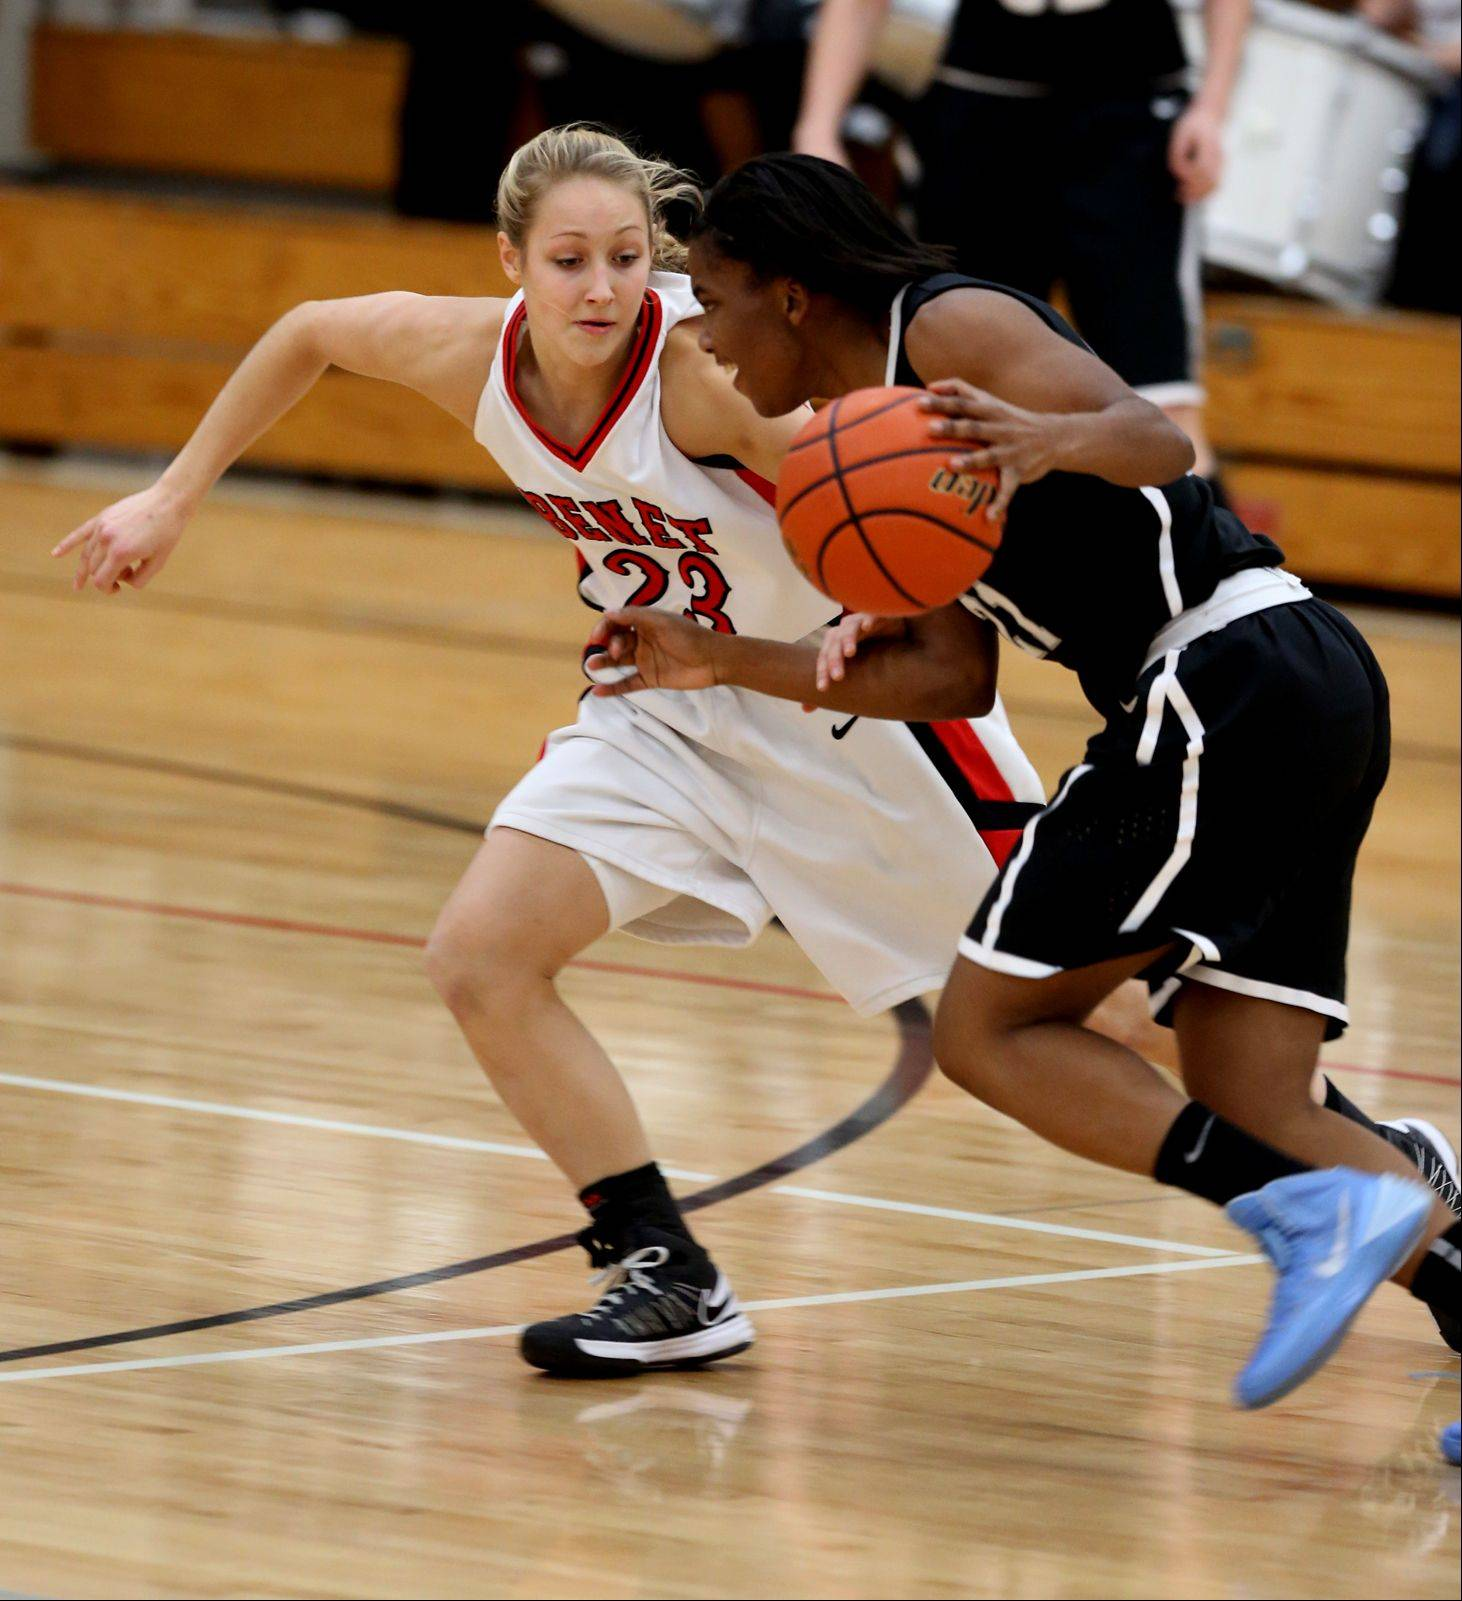 Benet's Emily Eshoo defends against Fenwick.